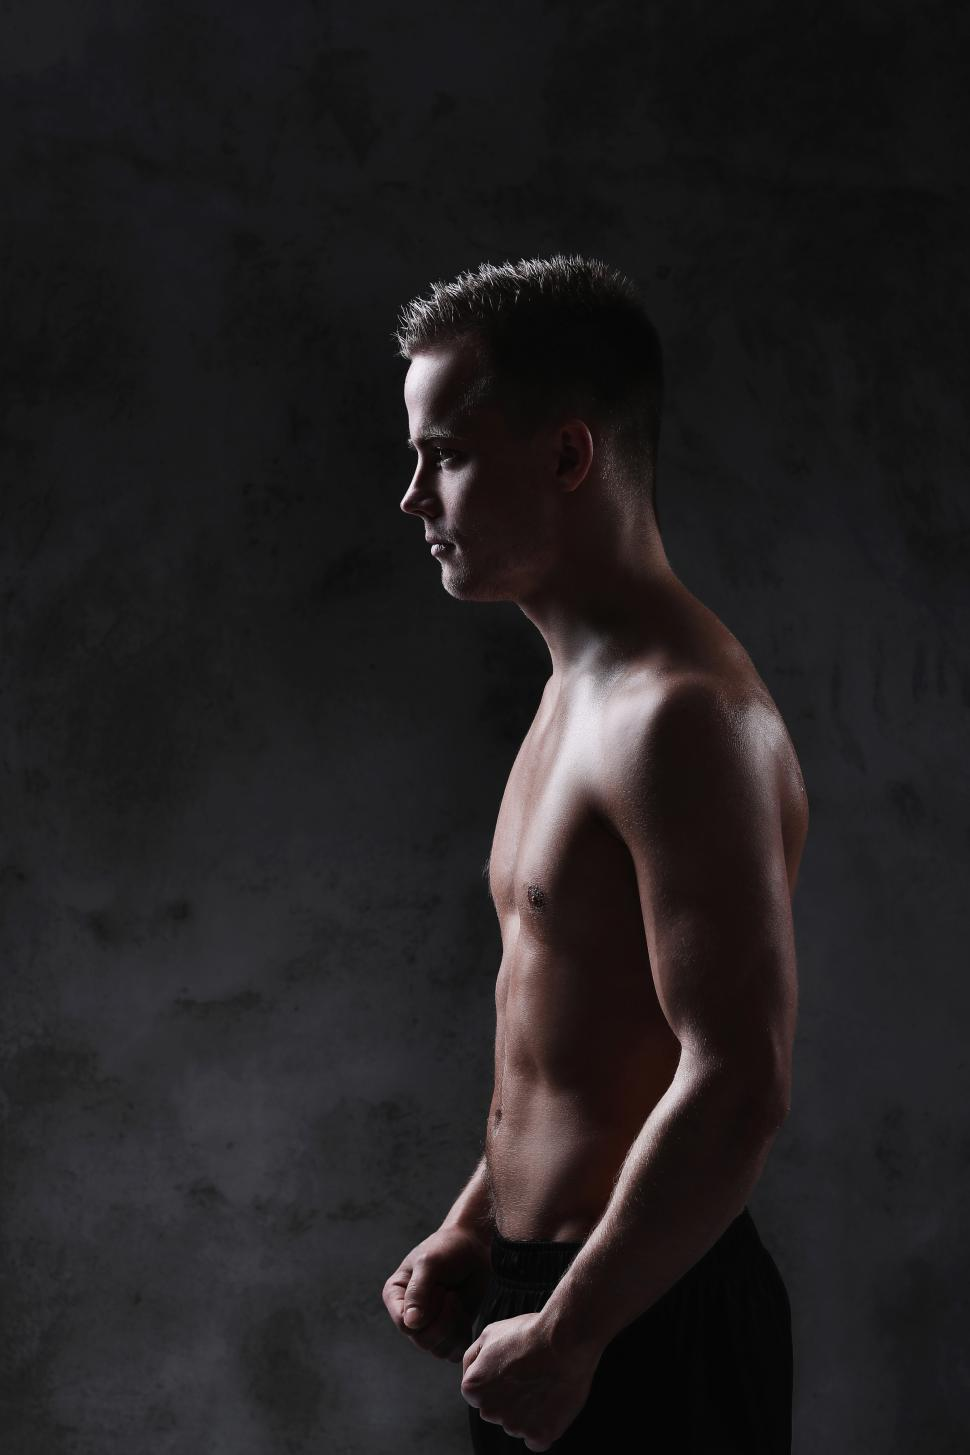 Download Free Stock Photo of Fit man